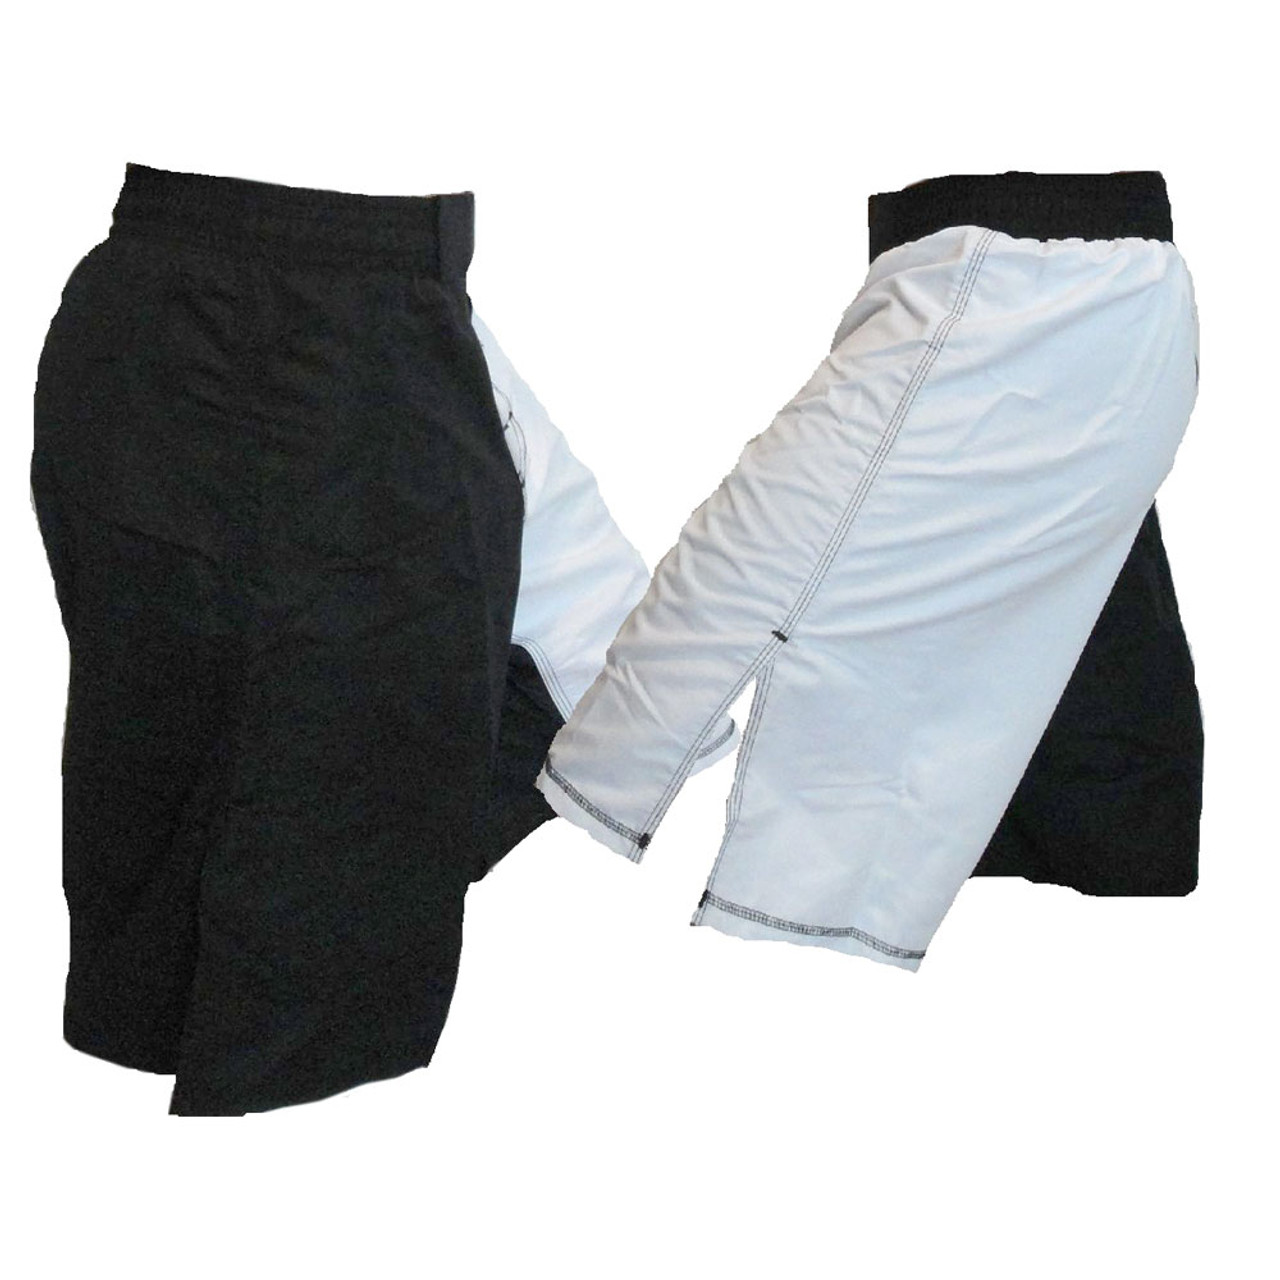 Blank MMA Fight Shorts Black MMA Fight Shorts